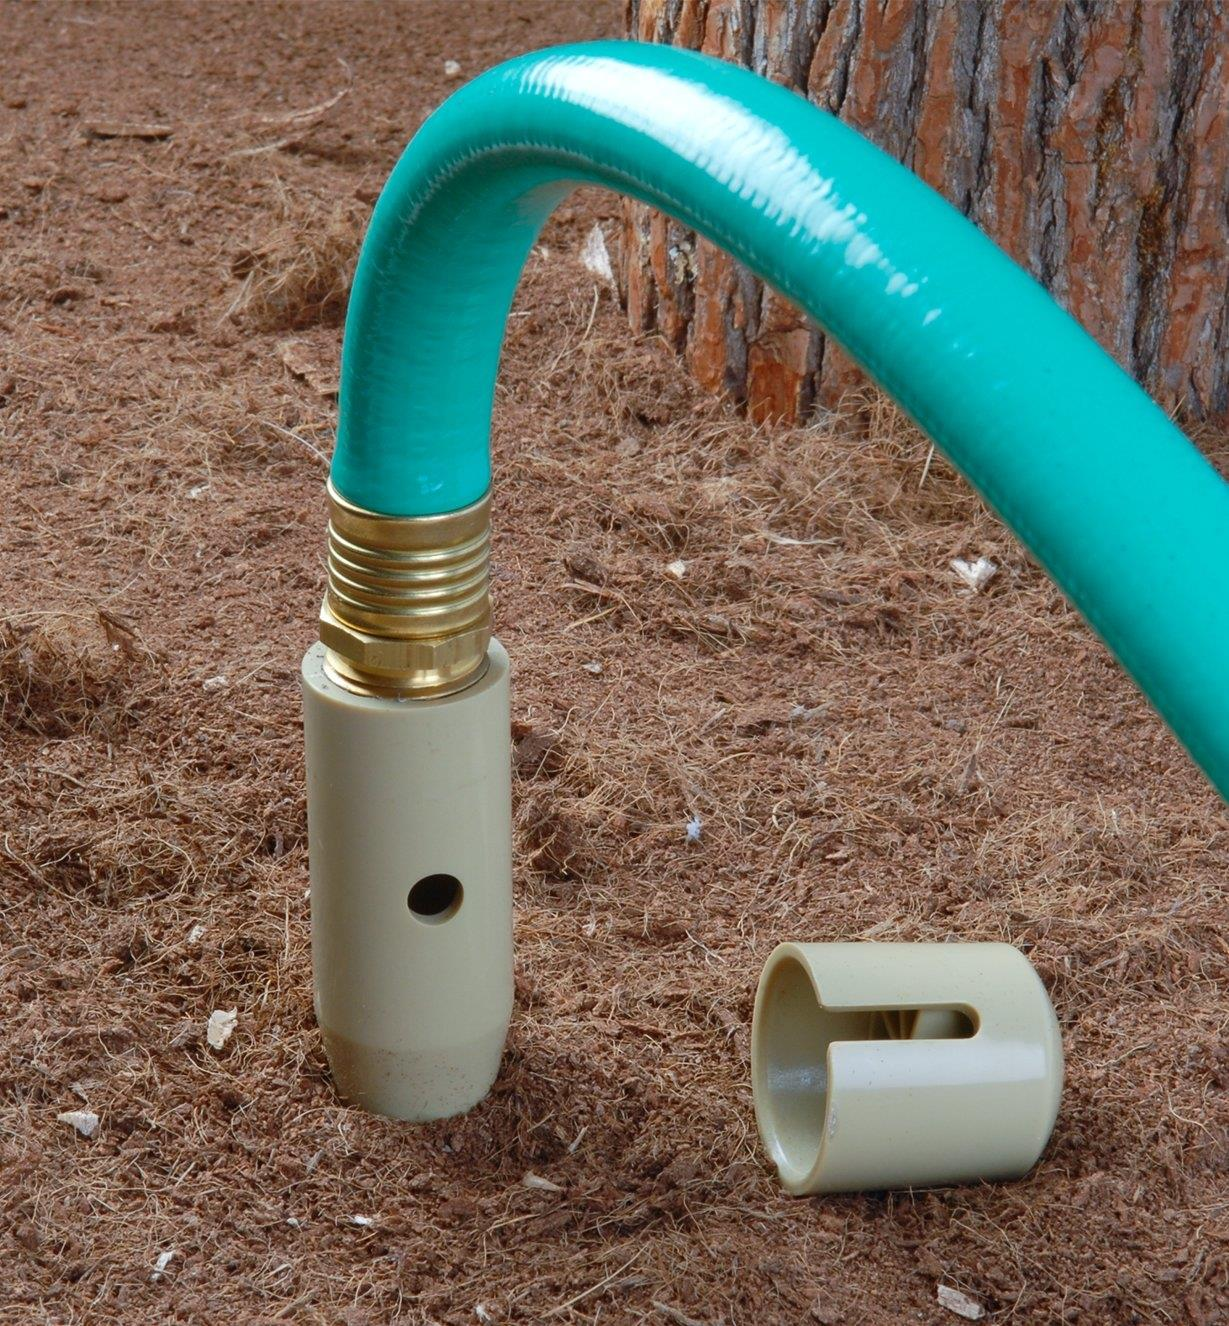 Deep Drip Watering Spike inserted into the ground, attached to a garden hose